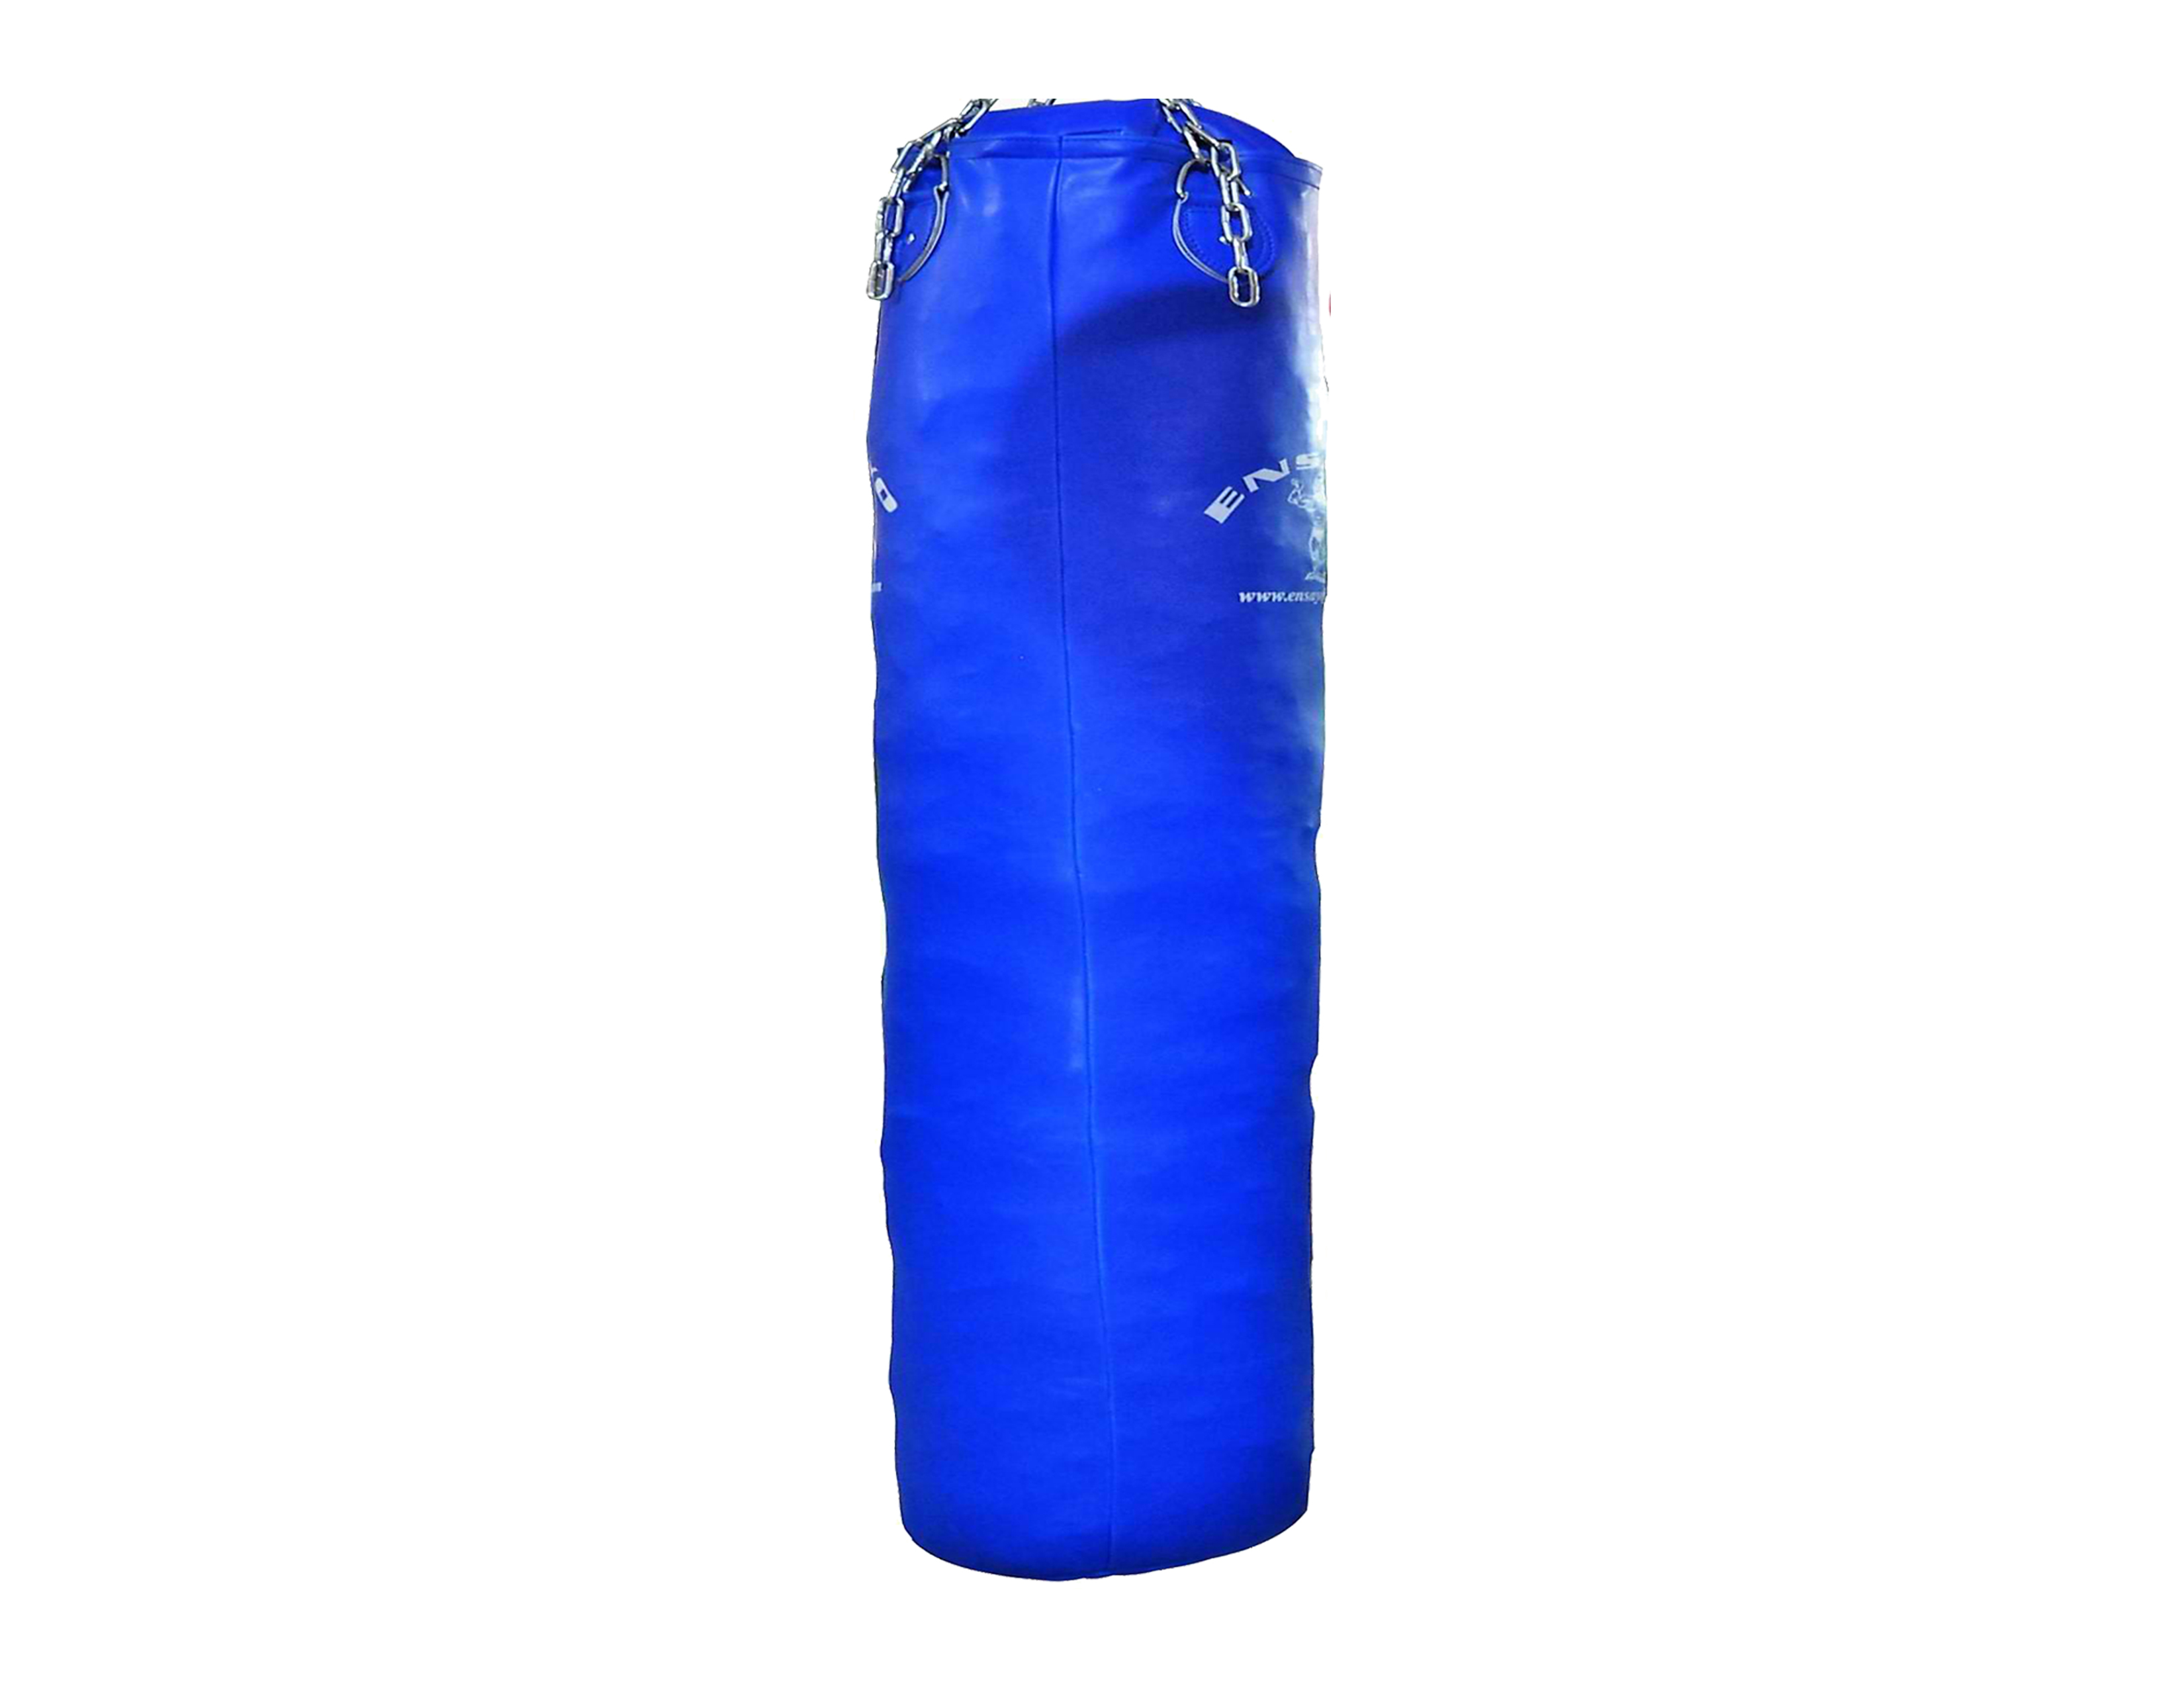 b3f502814e Ensayo™ 1.8m Leather Punch Bag 50kg. – Ensayo Gym Equipment